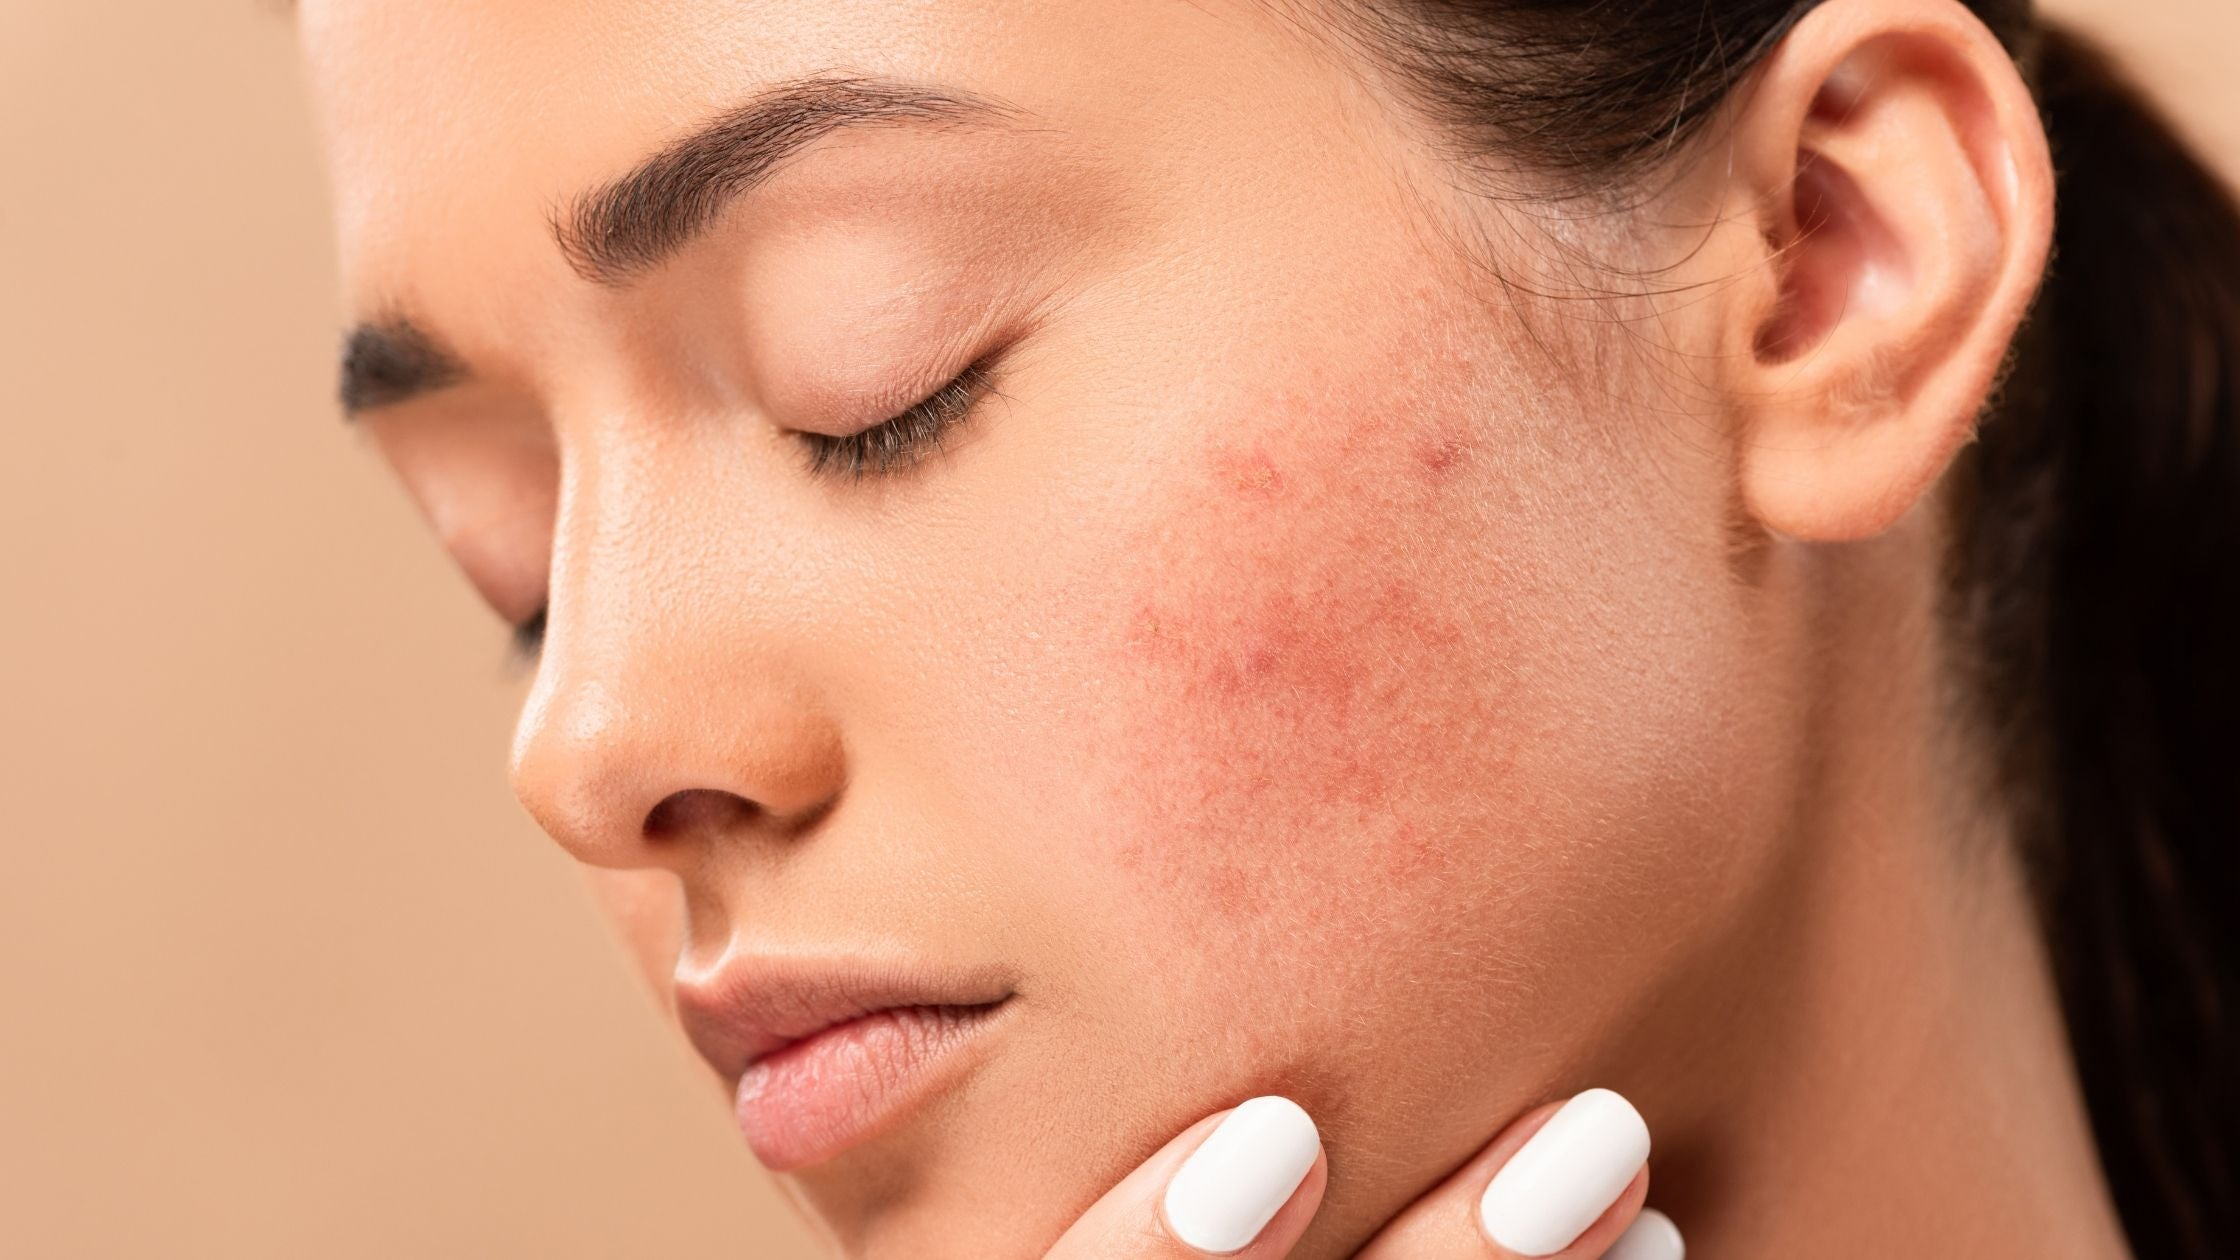 What is hormonal acne?